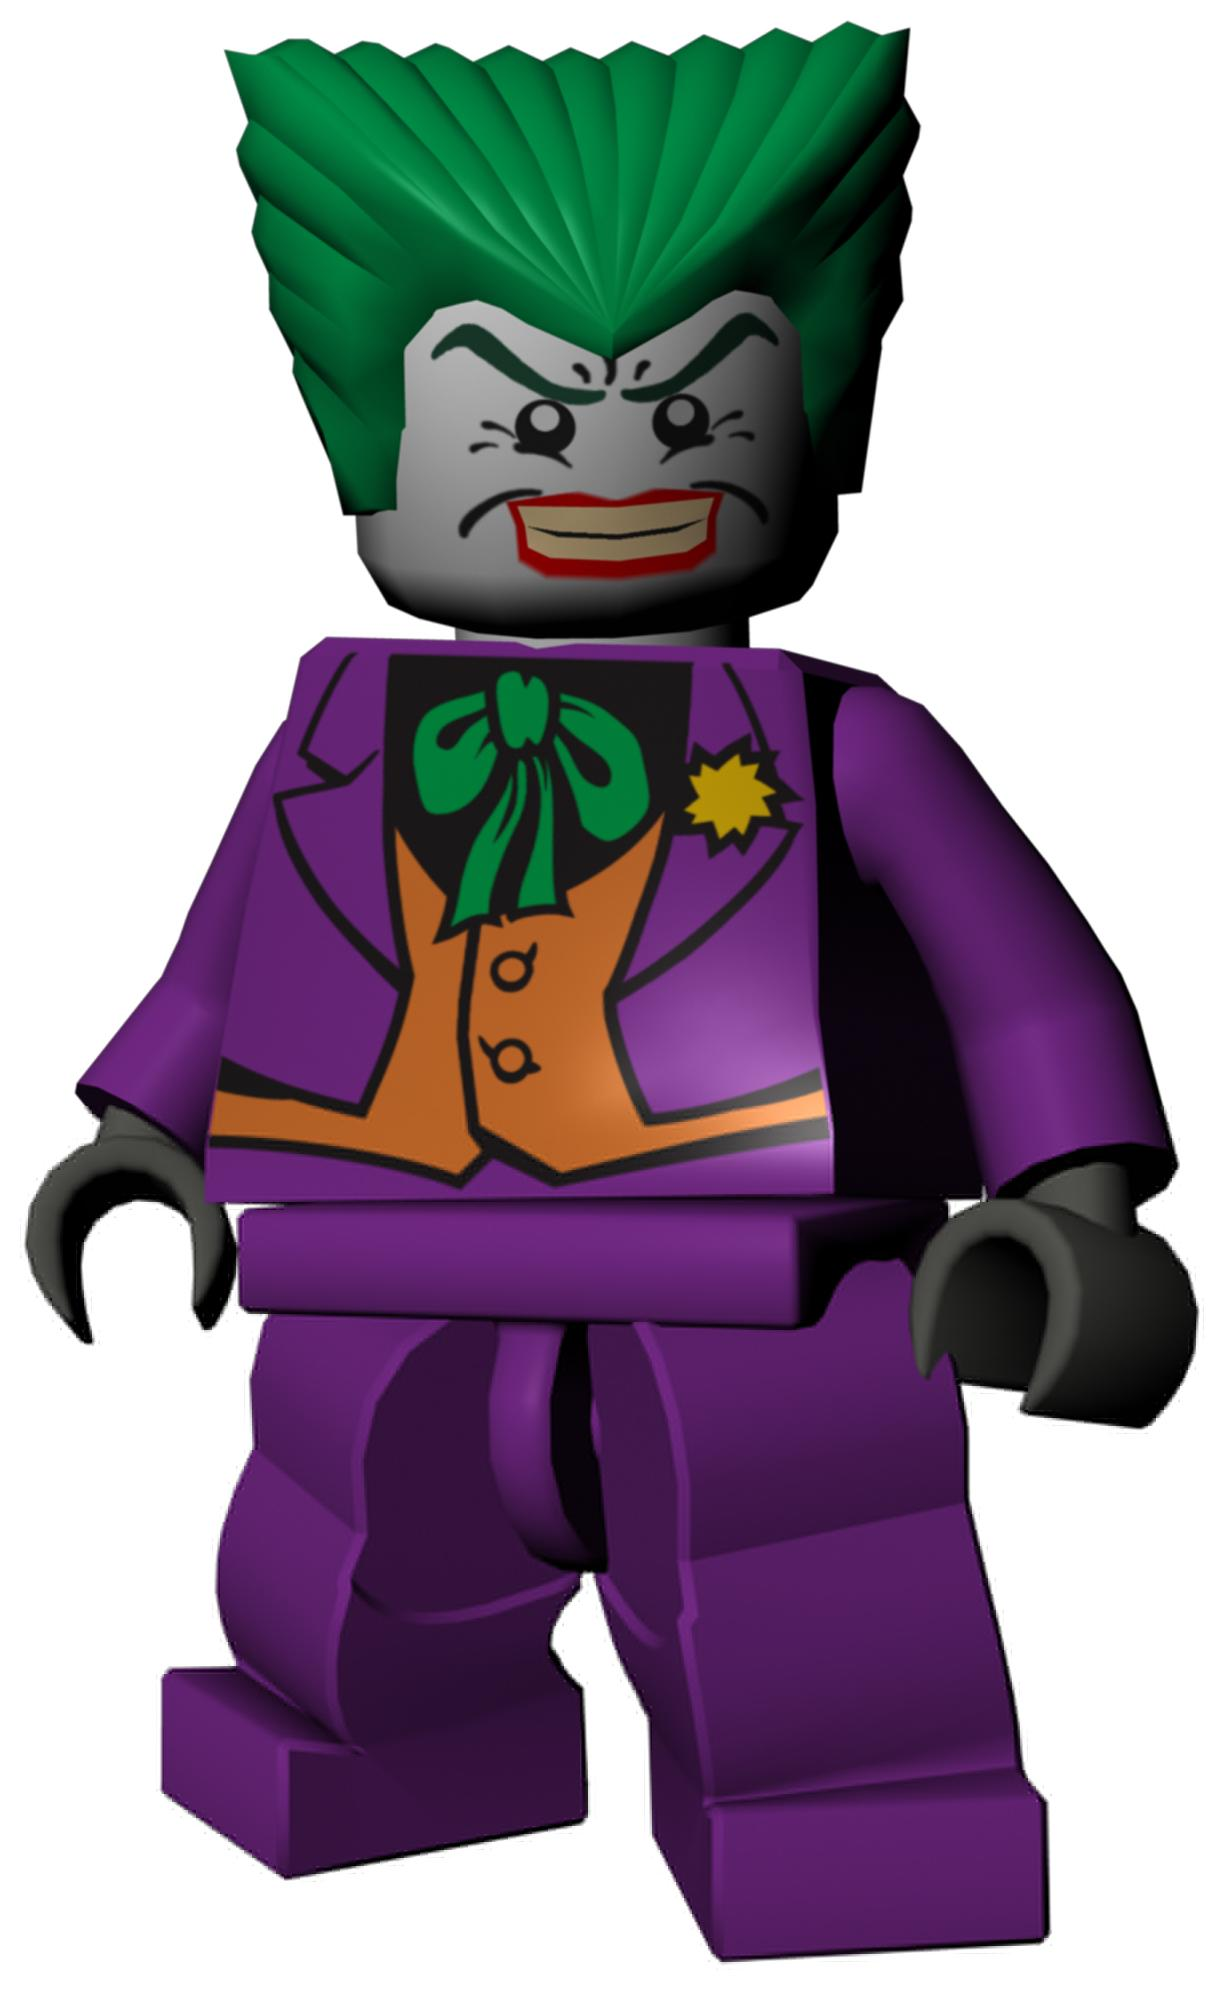 The joker lbtvg01 jpg